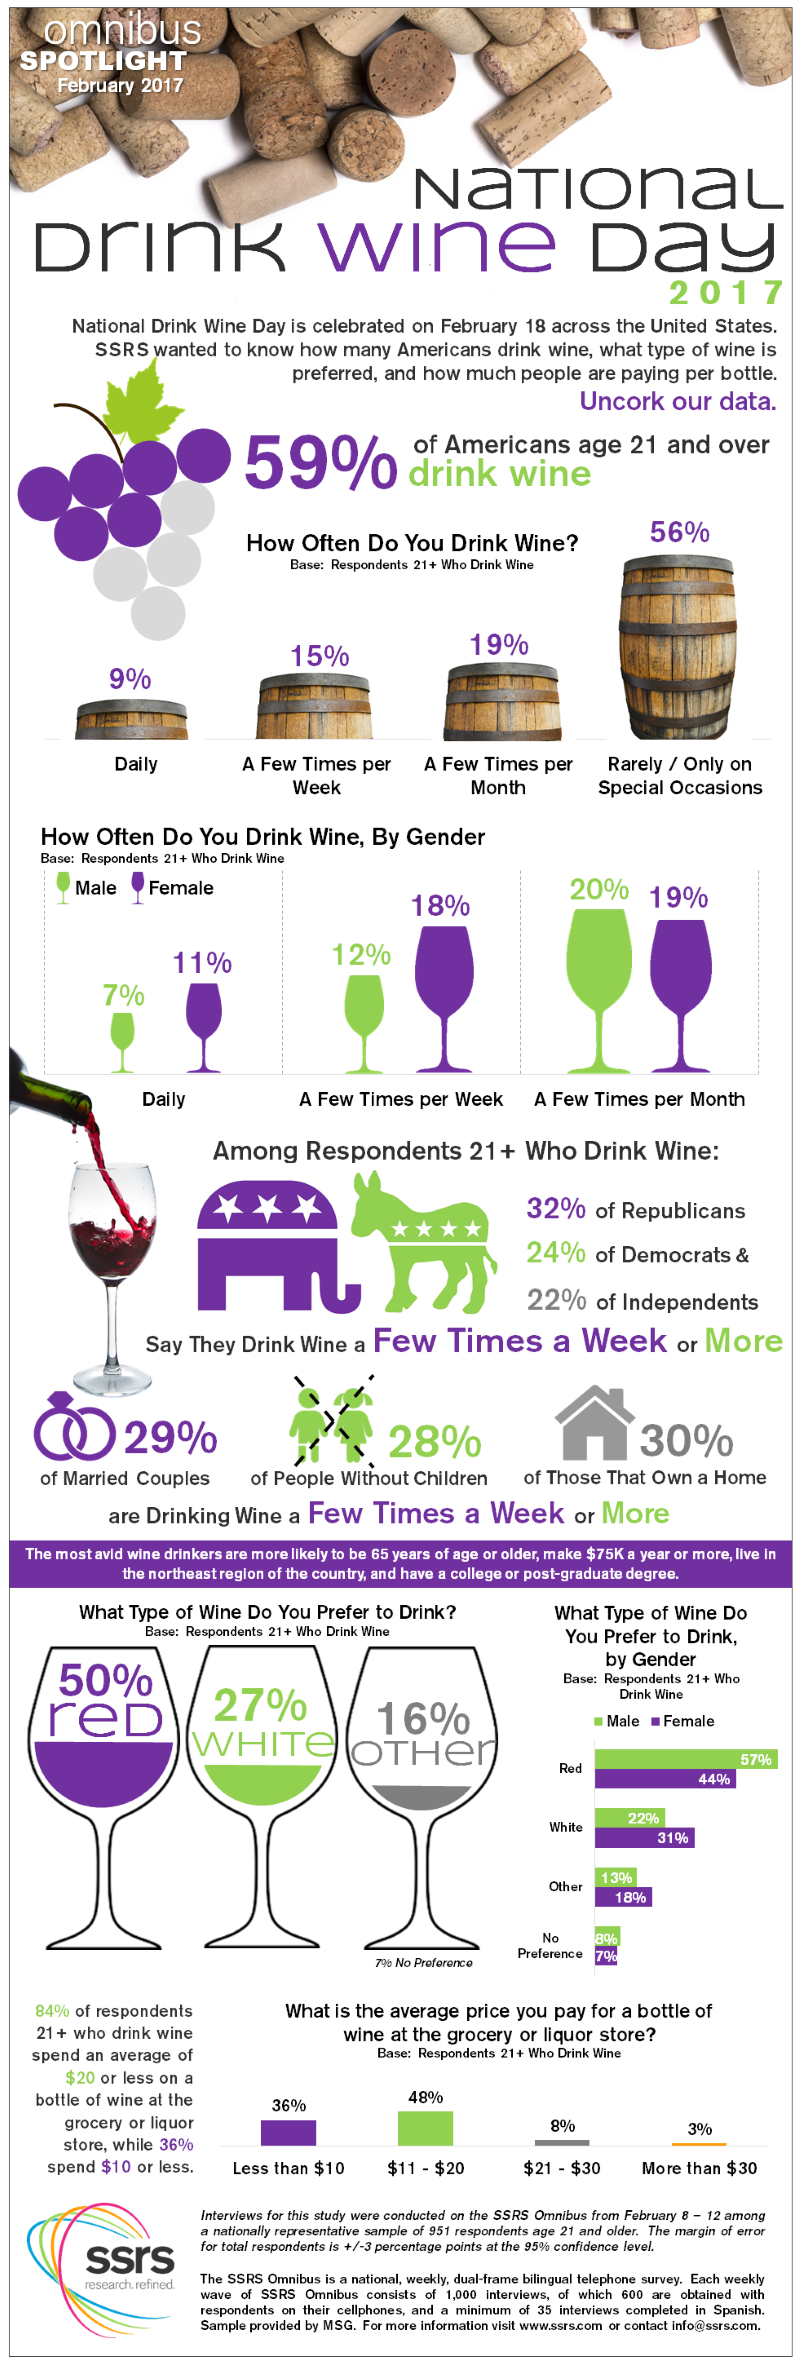 National Drink Wine Day 2017